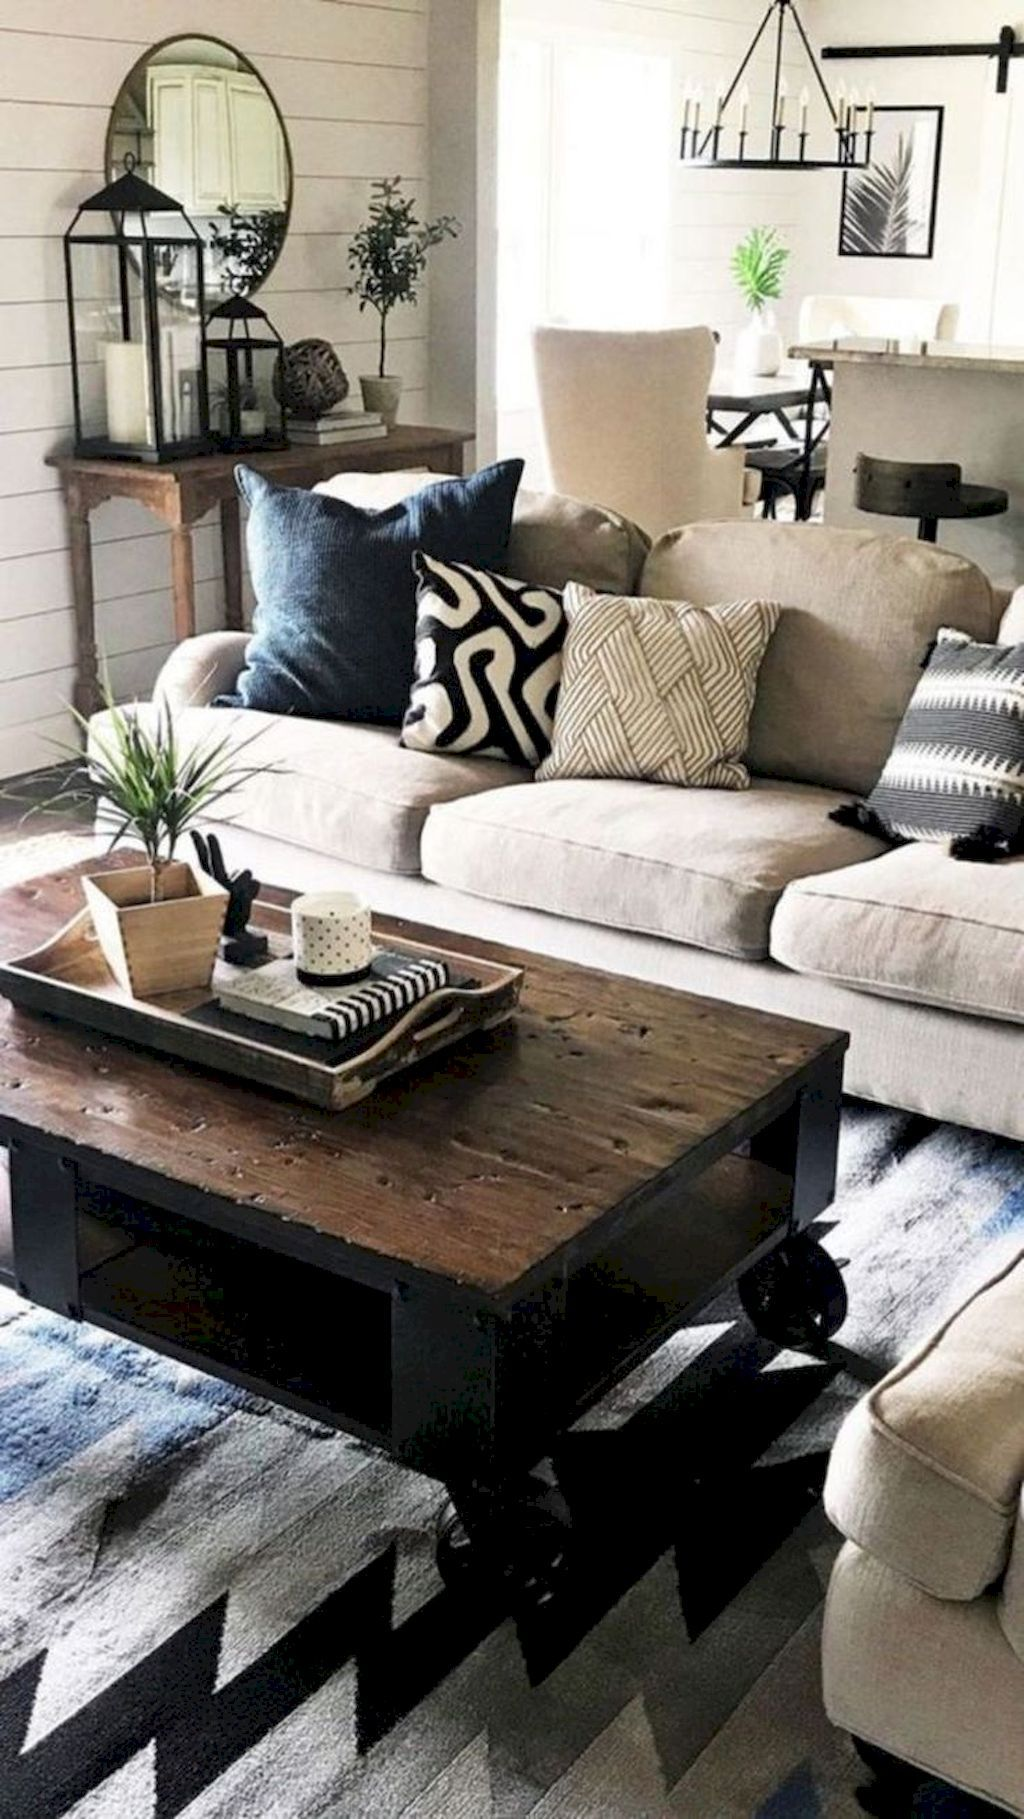 Cool 60 Small Apartment Living Room Decorating Ideas On A Budget Https Domakeove Modern Farmhouse Living Room Farmhouse Decor Living Room Living Room Remodel Living room farmhouse decor